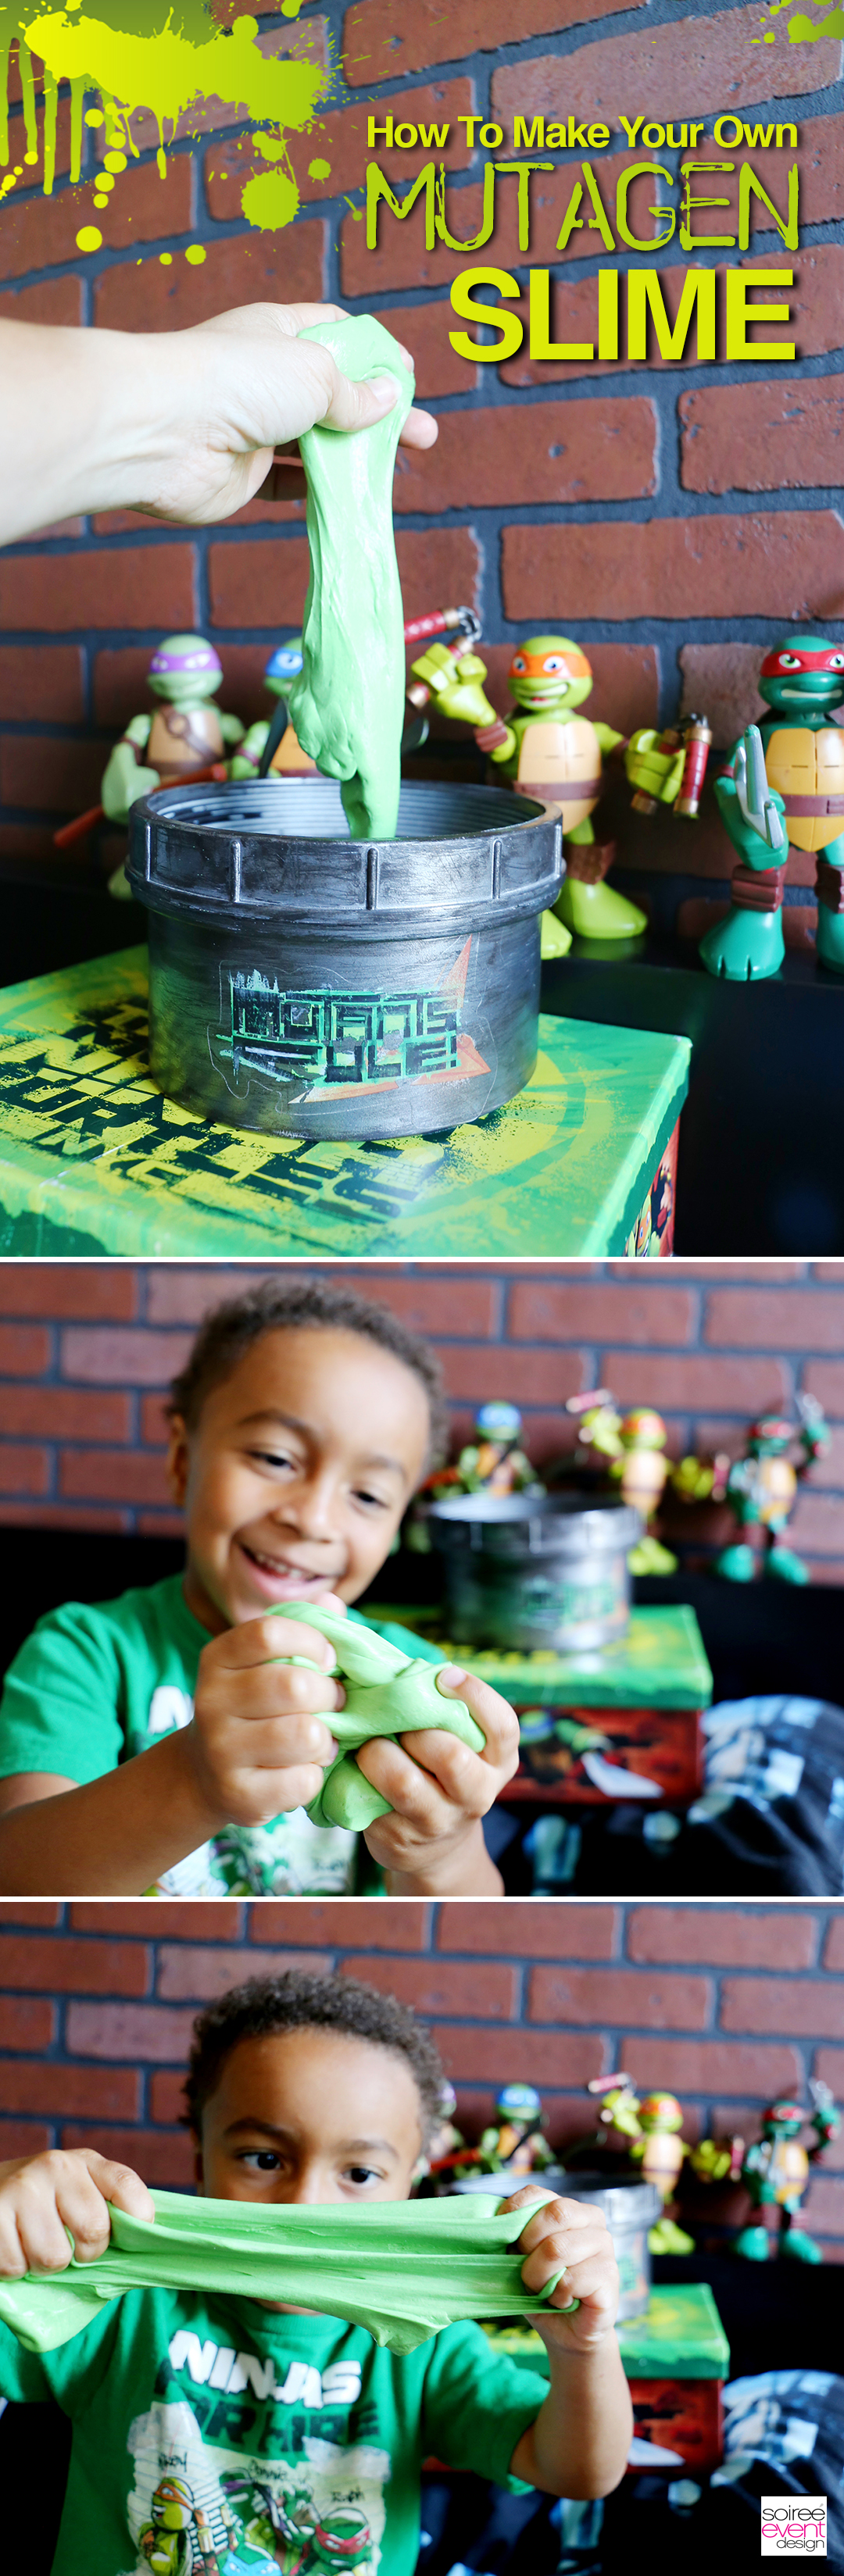 DIY Ninja Turtles Mutagen Slime